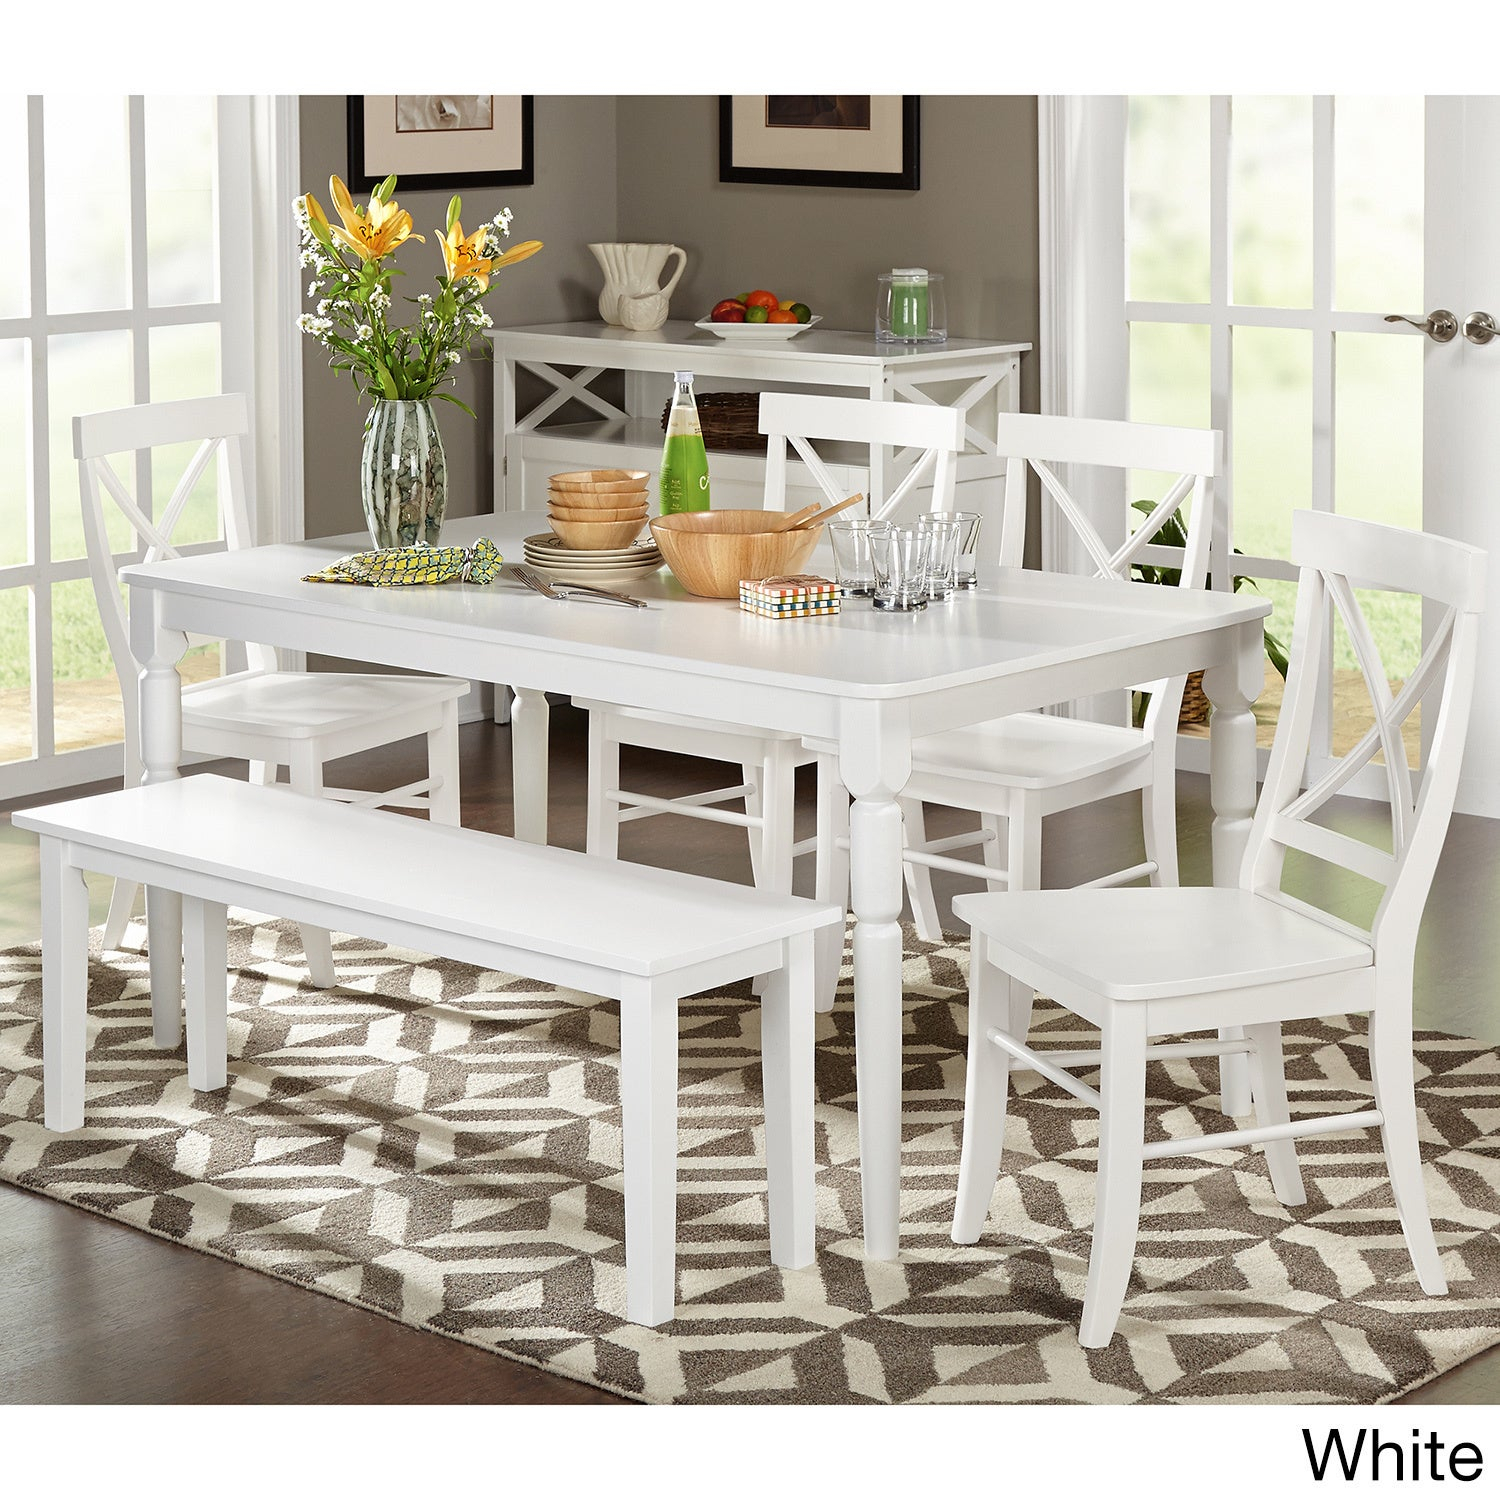 Buy Farmhouse Kitchen & Dining Room Sets Online At Overstock | Our In Best And Newest Falmer 3 Piece Solid Wood Dining Sets (Image 3 of 20)